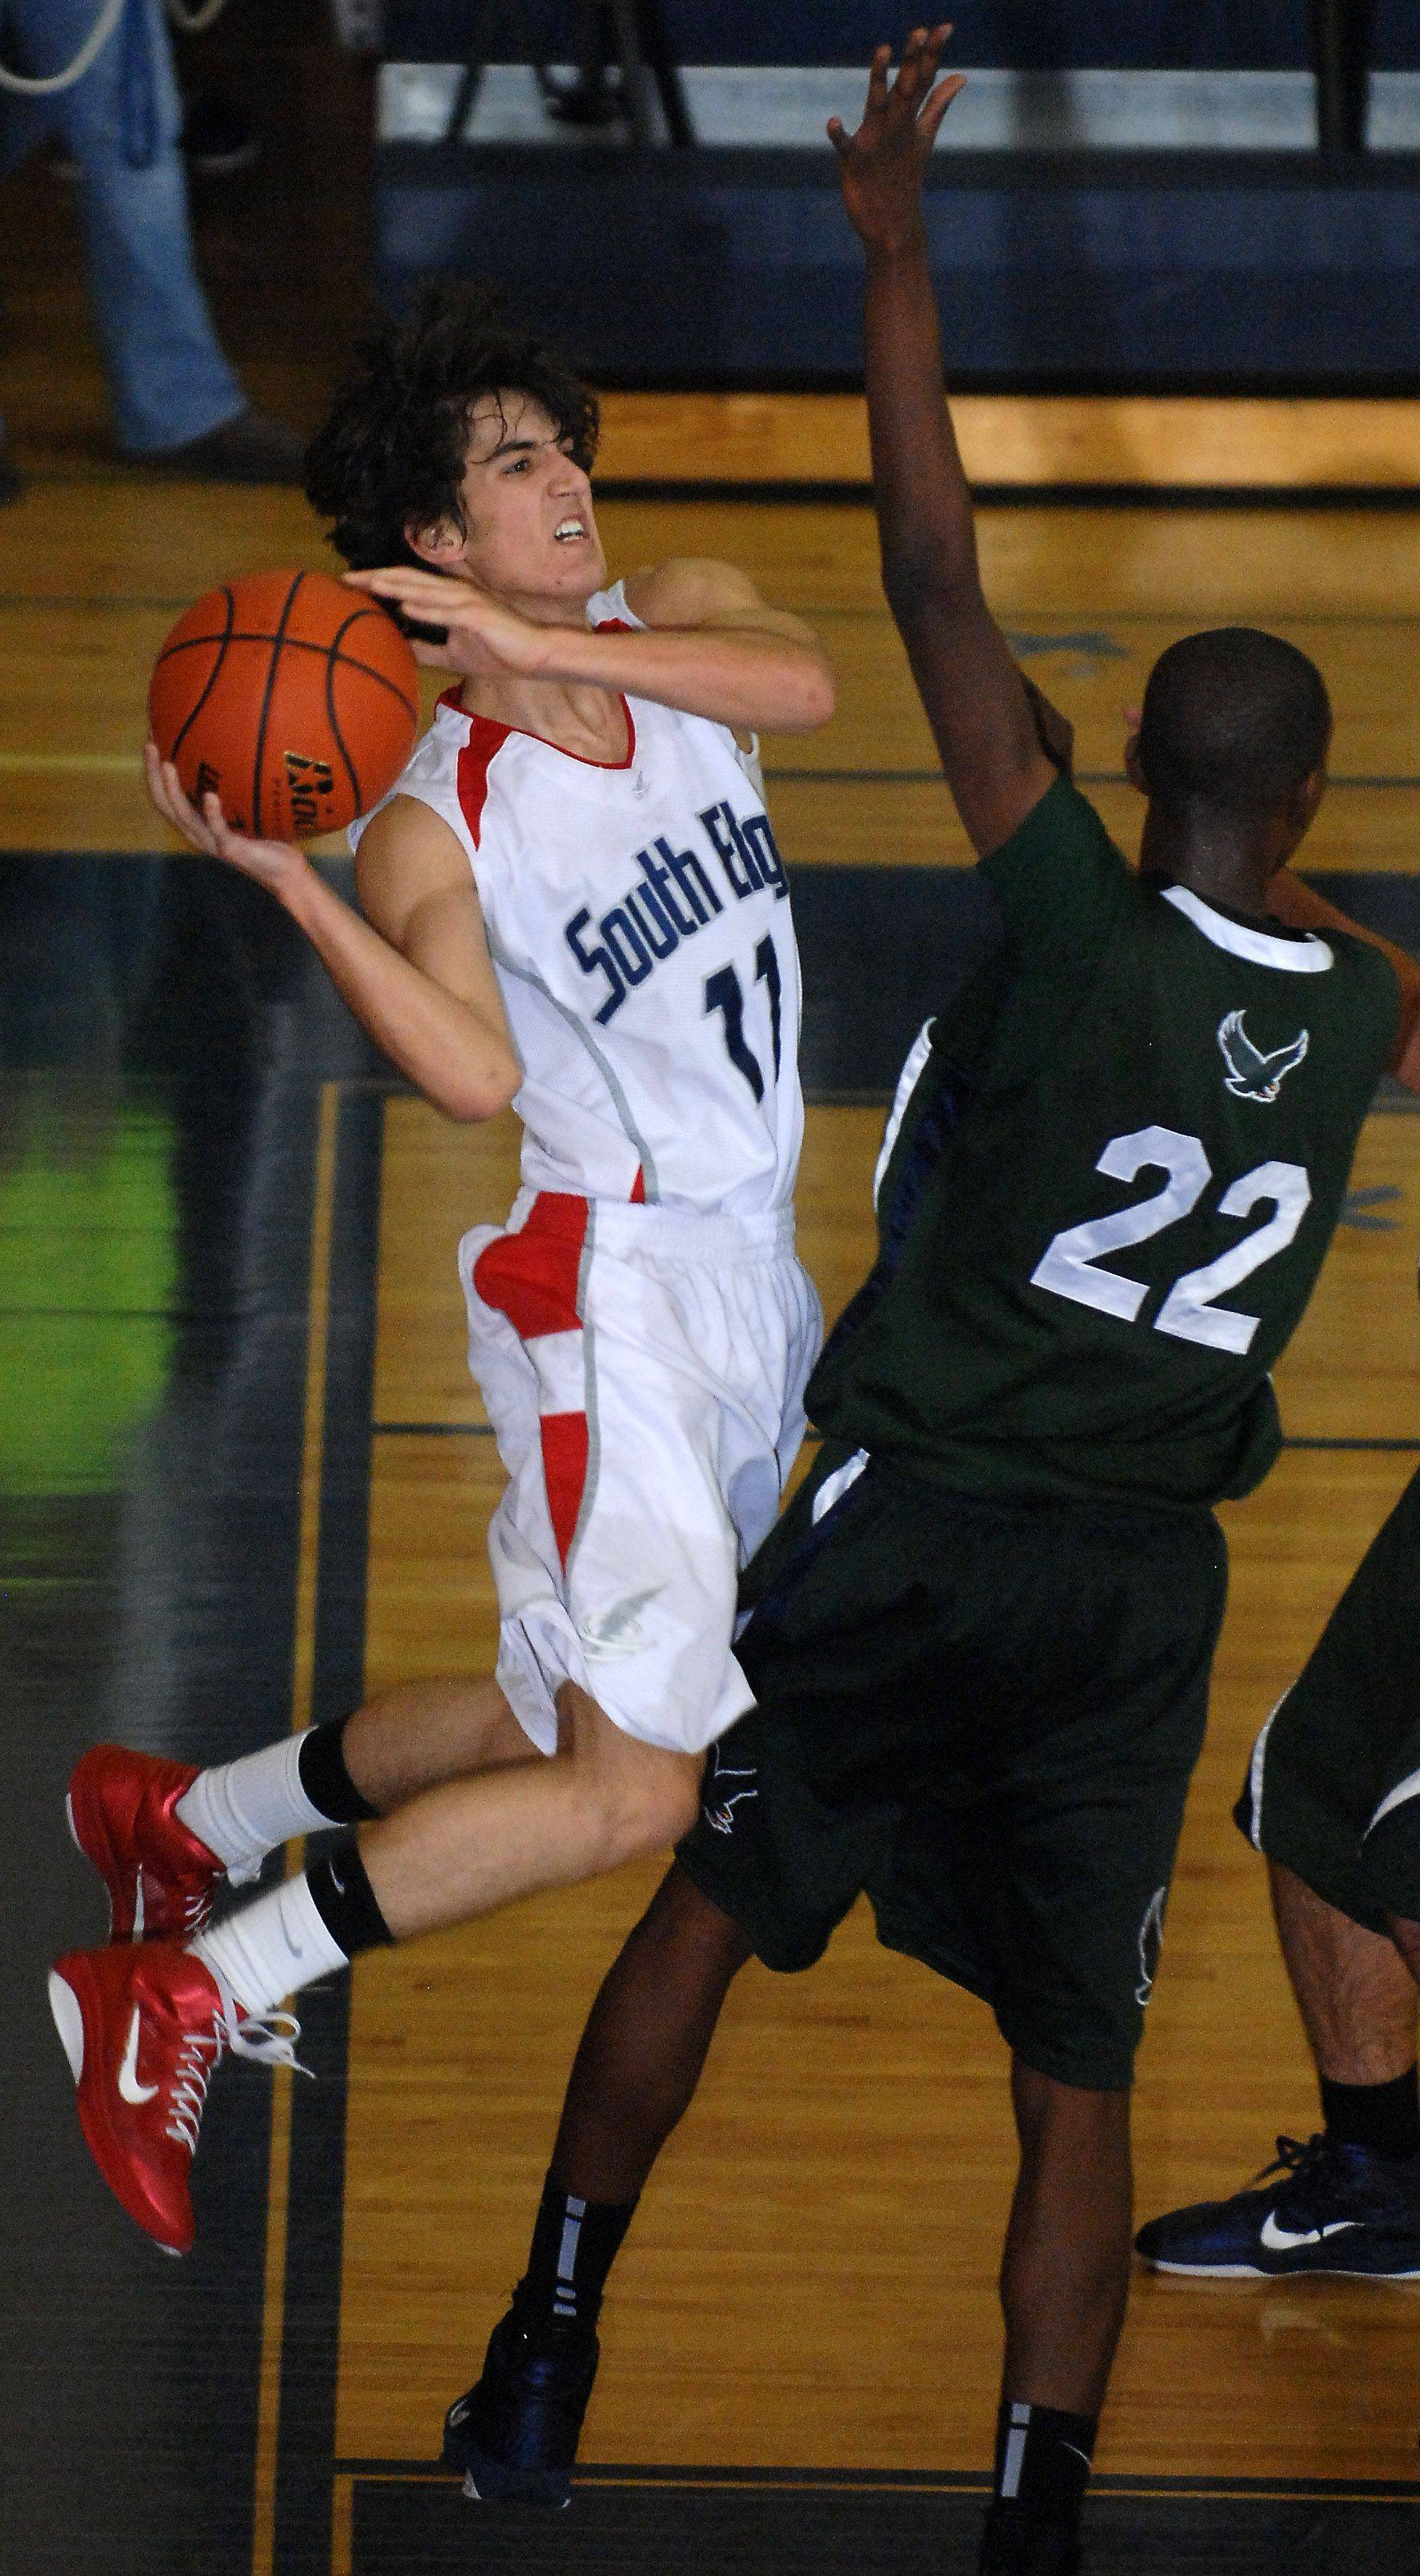 South Elgin's Sammy Sutter is fouled going to the basket by Bartlett's Femi Oyewole.